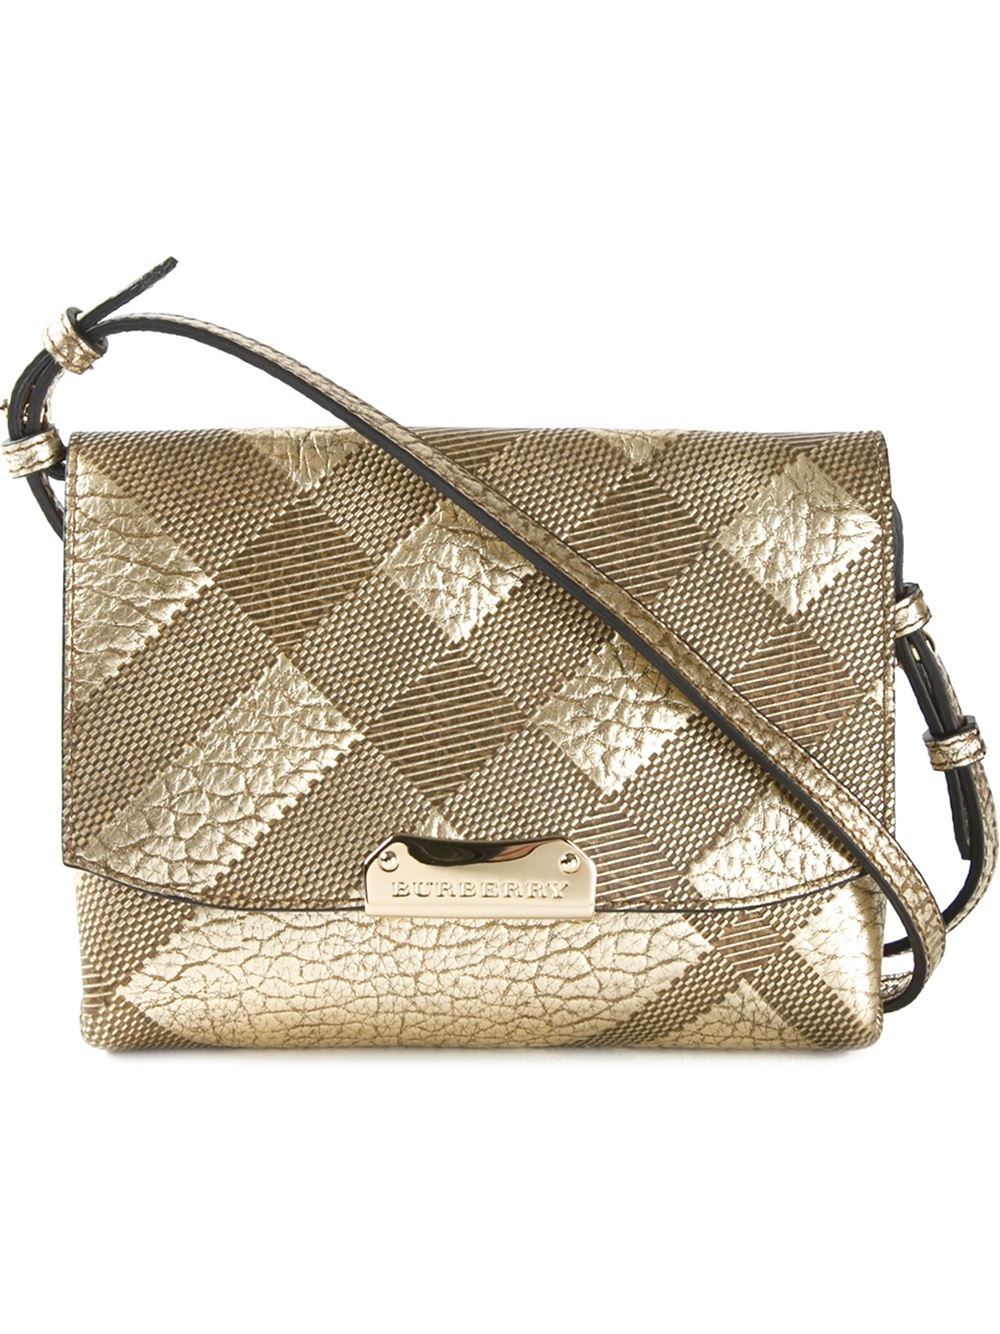 Burberry Embossed Check Leather Cross Body Bag In Metallic